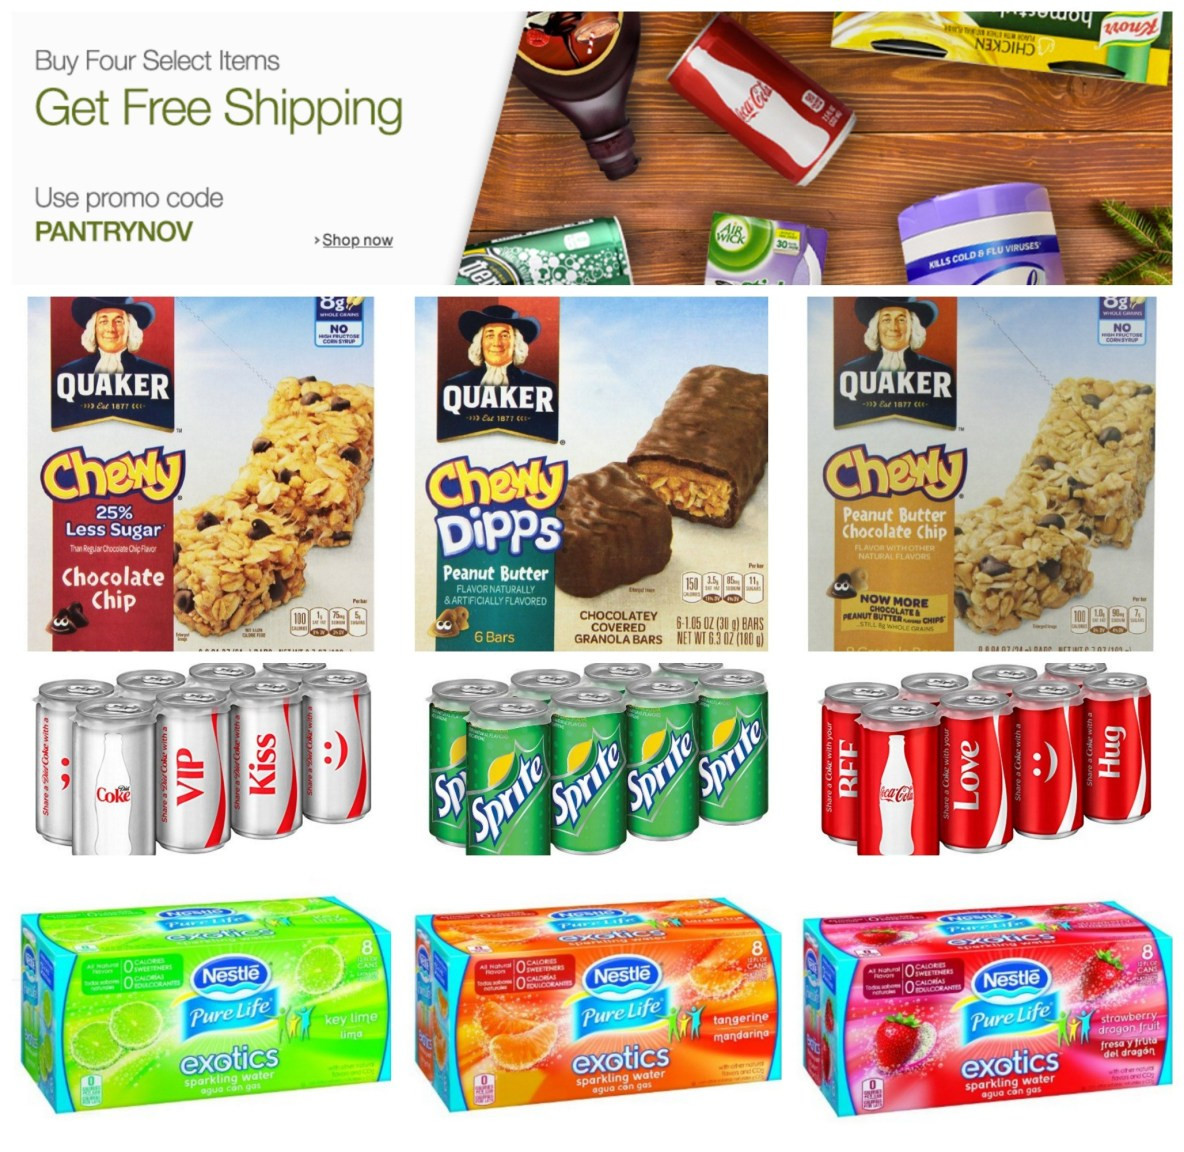 Best ideas about Free Prime Pantry Shipping . Save or Pin NEW Prime Pantry Coupons Buy 4 Select Items Get FREE Now.